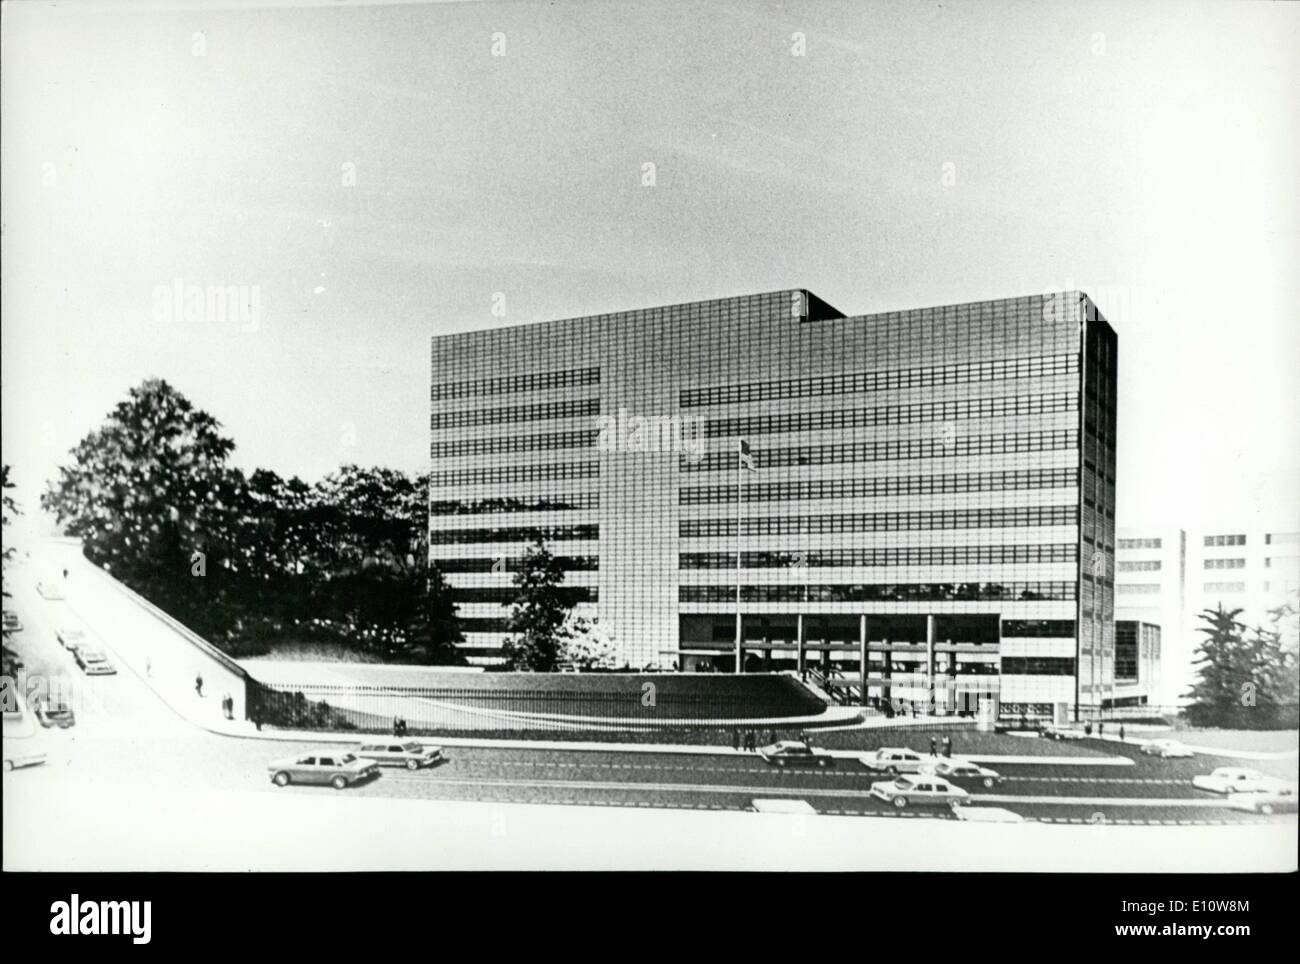 Jun. 06, 1974 - ''Hoovers's Folly'' In Tokyo Demolished: The U.S. Embassy in Tokyo, which was named ''Hoover's Folly'' when critics charged that the exorbitant sum of -million was squandered on it by the late president Herbert Hoover during the ''Great Depression'' in 1931, is being demolished to make way for a glass paneled new American Embassy. The old embassy was designed by Antonin Raymond, a disciple of Frank Lloyd Wright, and was referred to as an edifice of mixed architectural blood. The new embassy has been designed by Cesar Pelli of Gruen Associates in Los Angeles. U.S.A - Stock Image